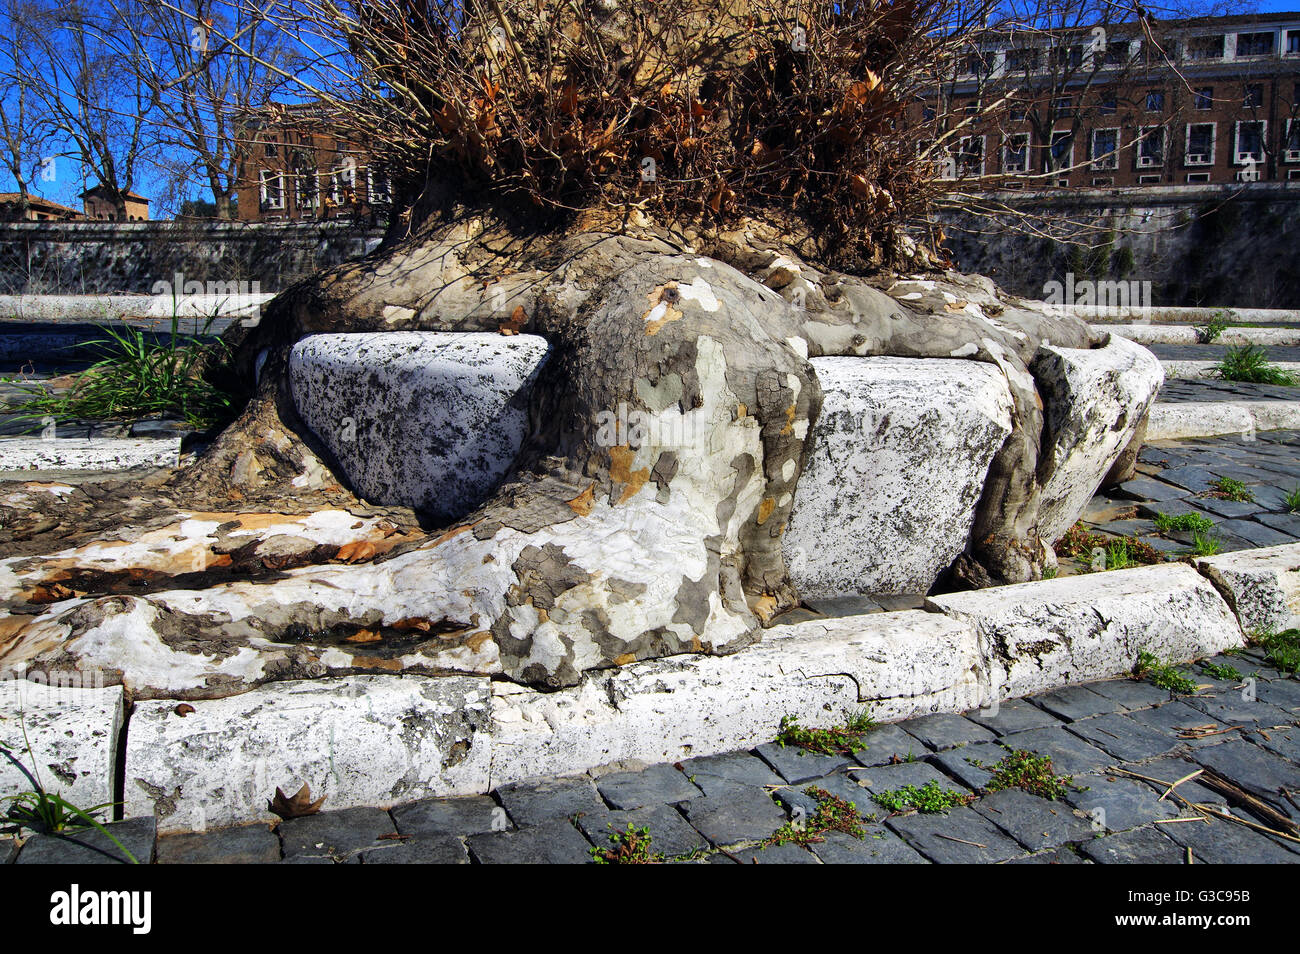 Tree Roots ability to adapt Causing Pavement Damage - Stock Image